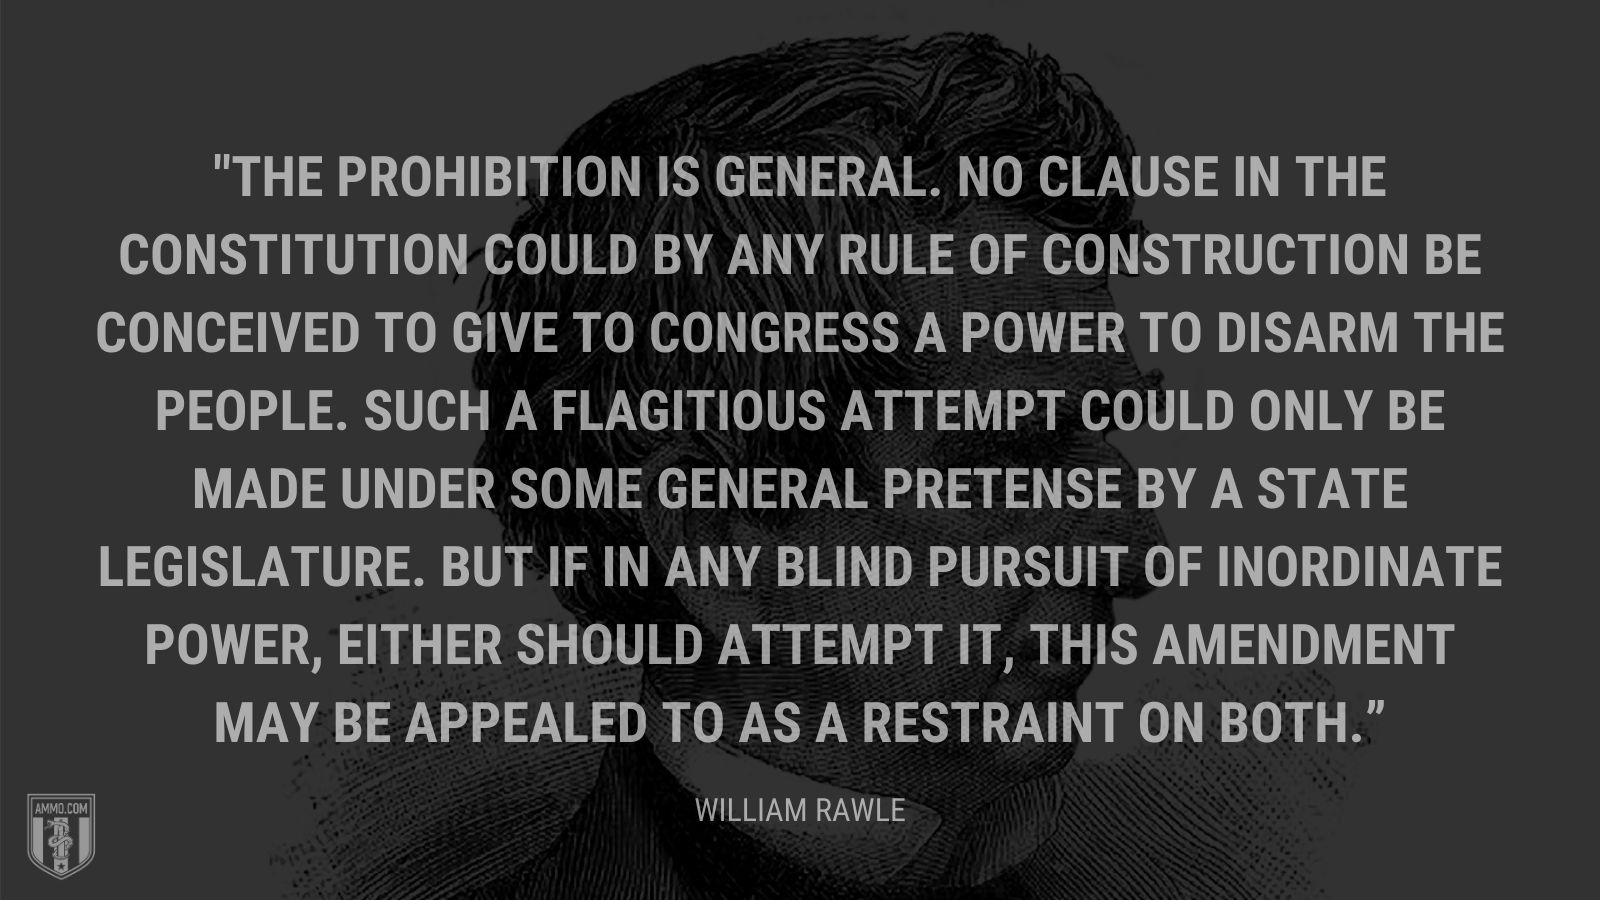 """The prohibition is general. No clause in the Constitution could by any rule of construction be conceived to give to Congress a power to disarm the people. Such a flagitious attempt could only be made under some general pretense by a state legislature. But if in any blind pursuit of inordinate power, either should attempt it, this amendment may be appealed to as a restraint on both."" - William Rawle"